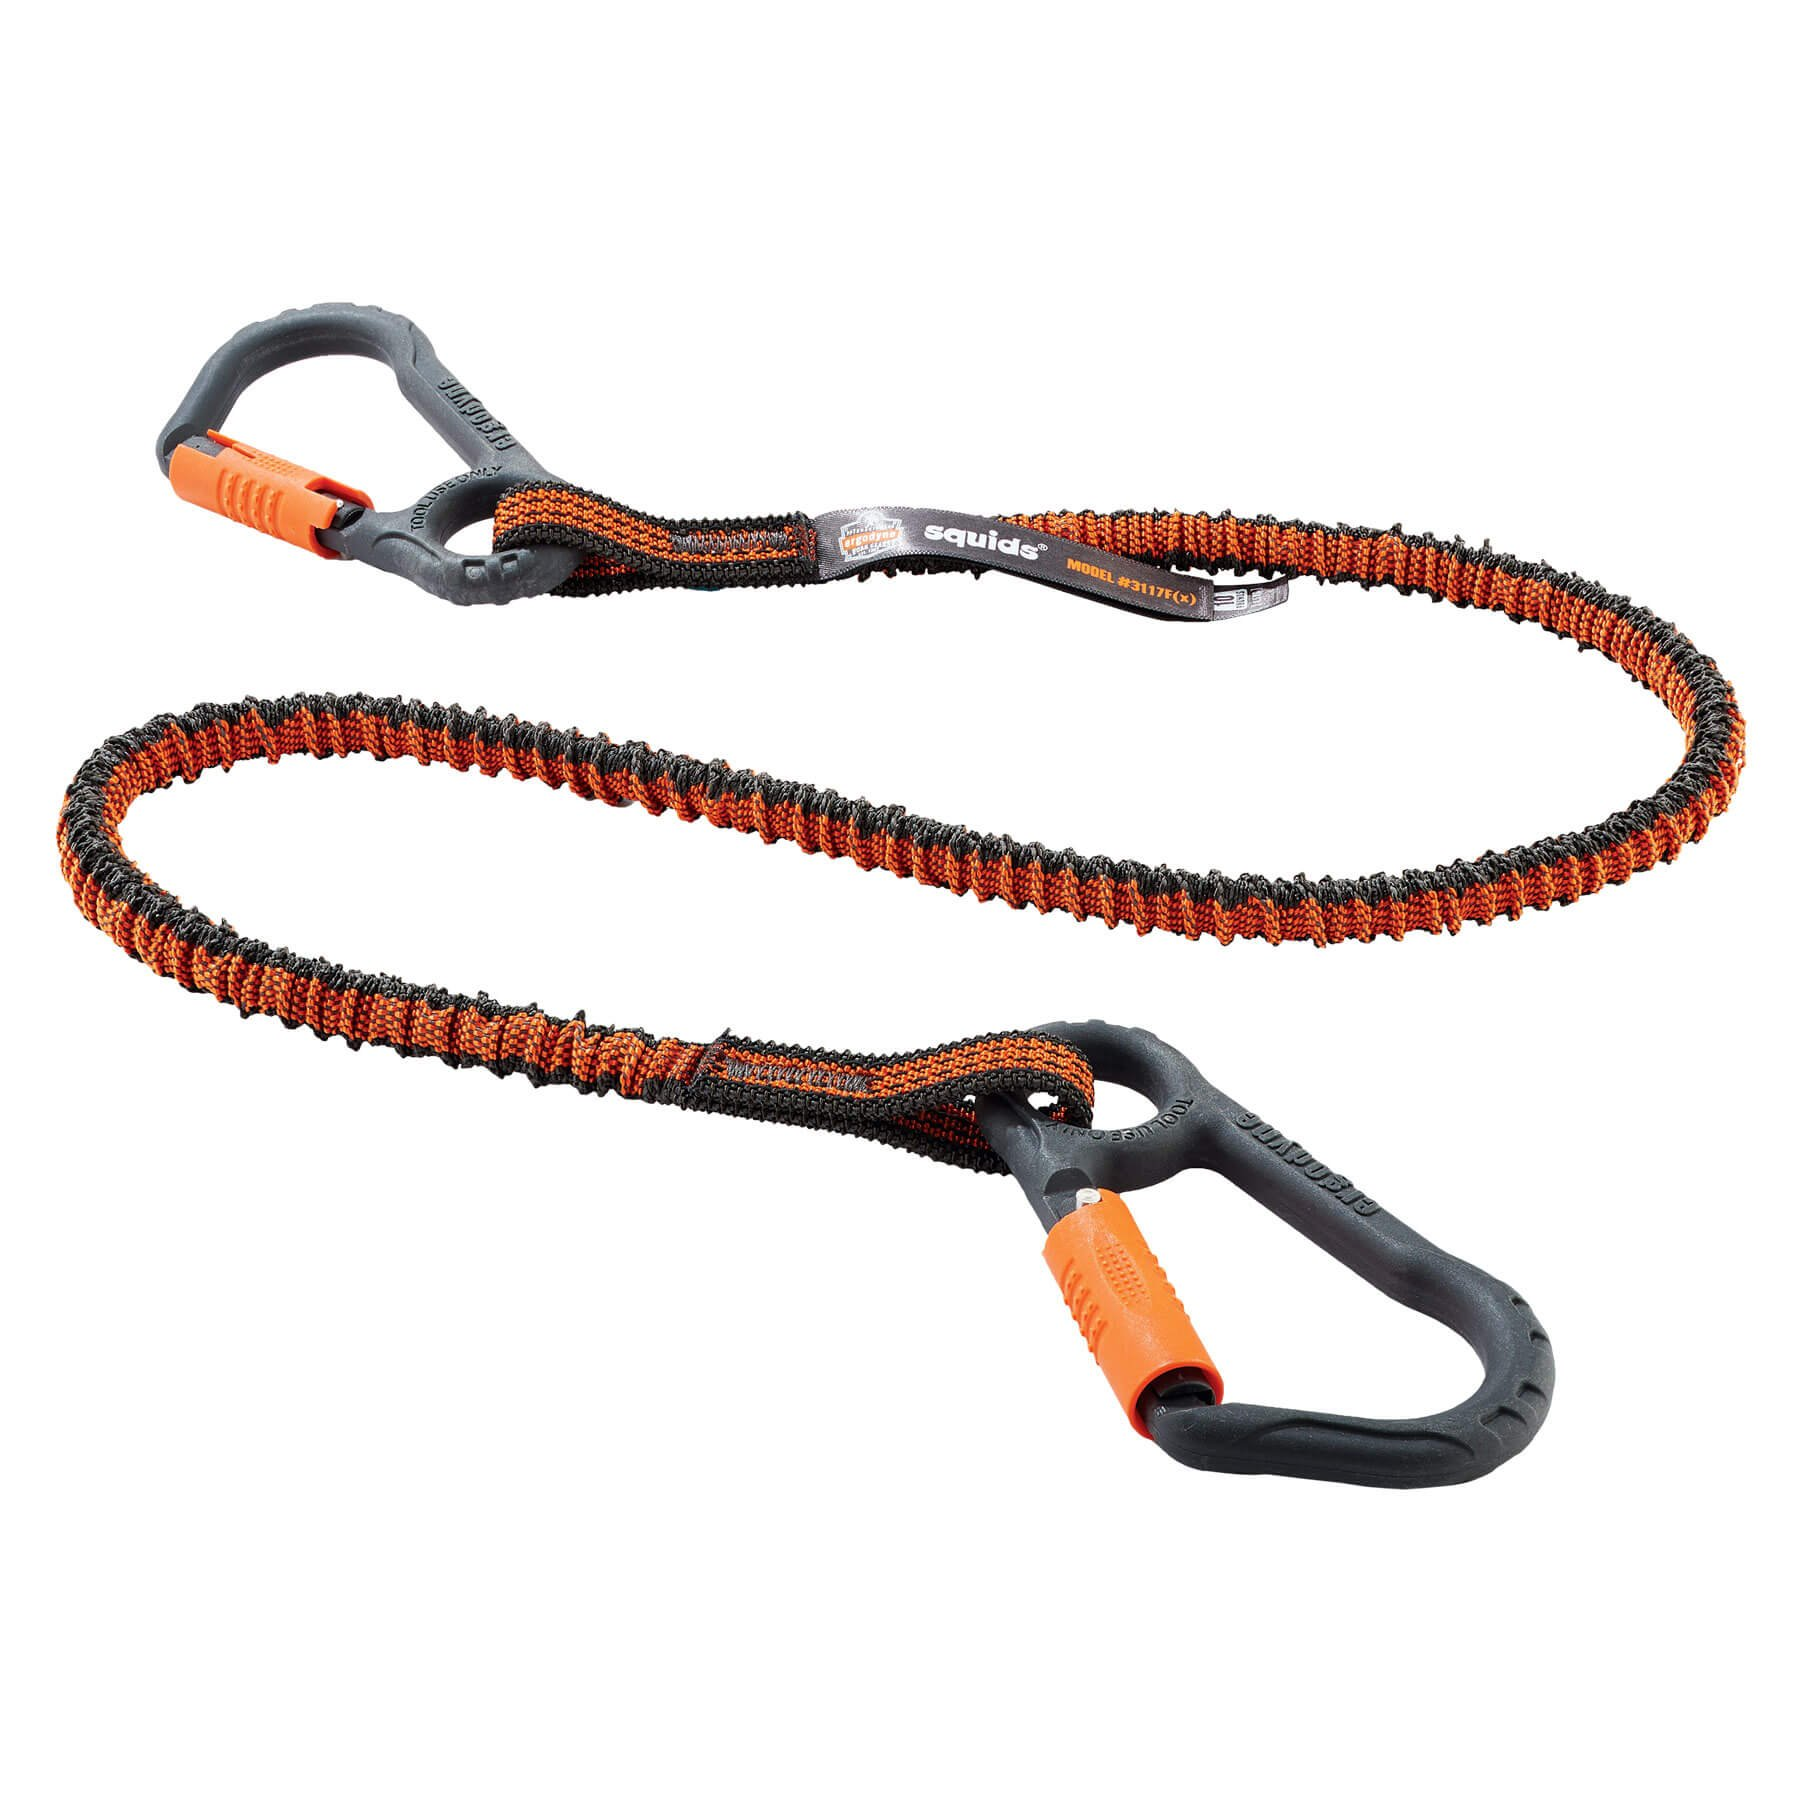 Ergodyne Squids 3117F(x) Shock Absorbing Tool Lanyard with Dual Nylon Composite Carabiners, 10 Pounds